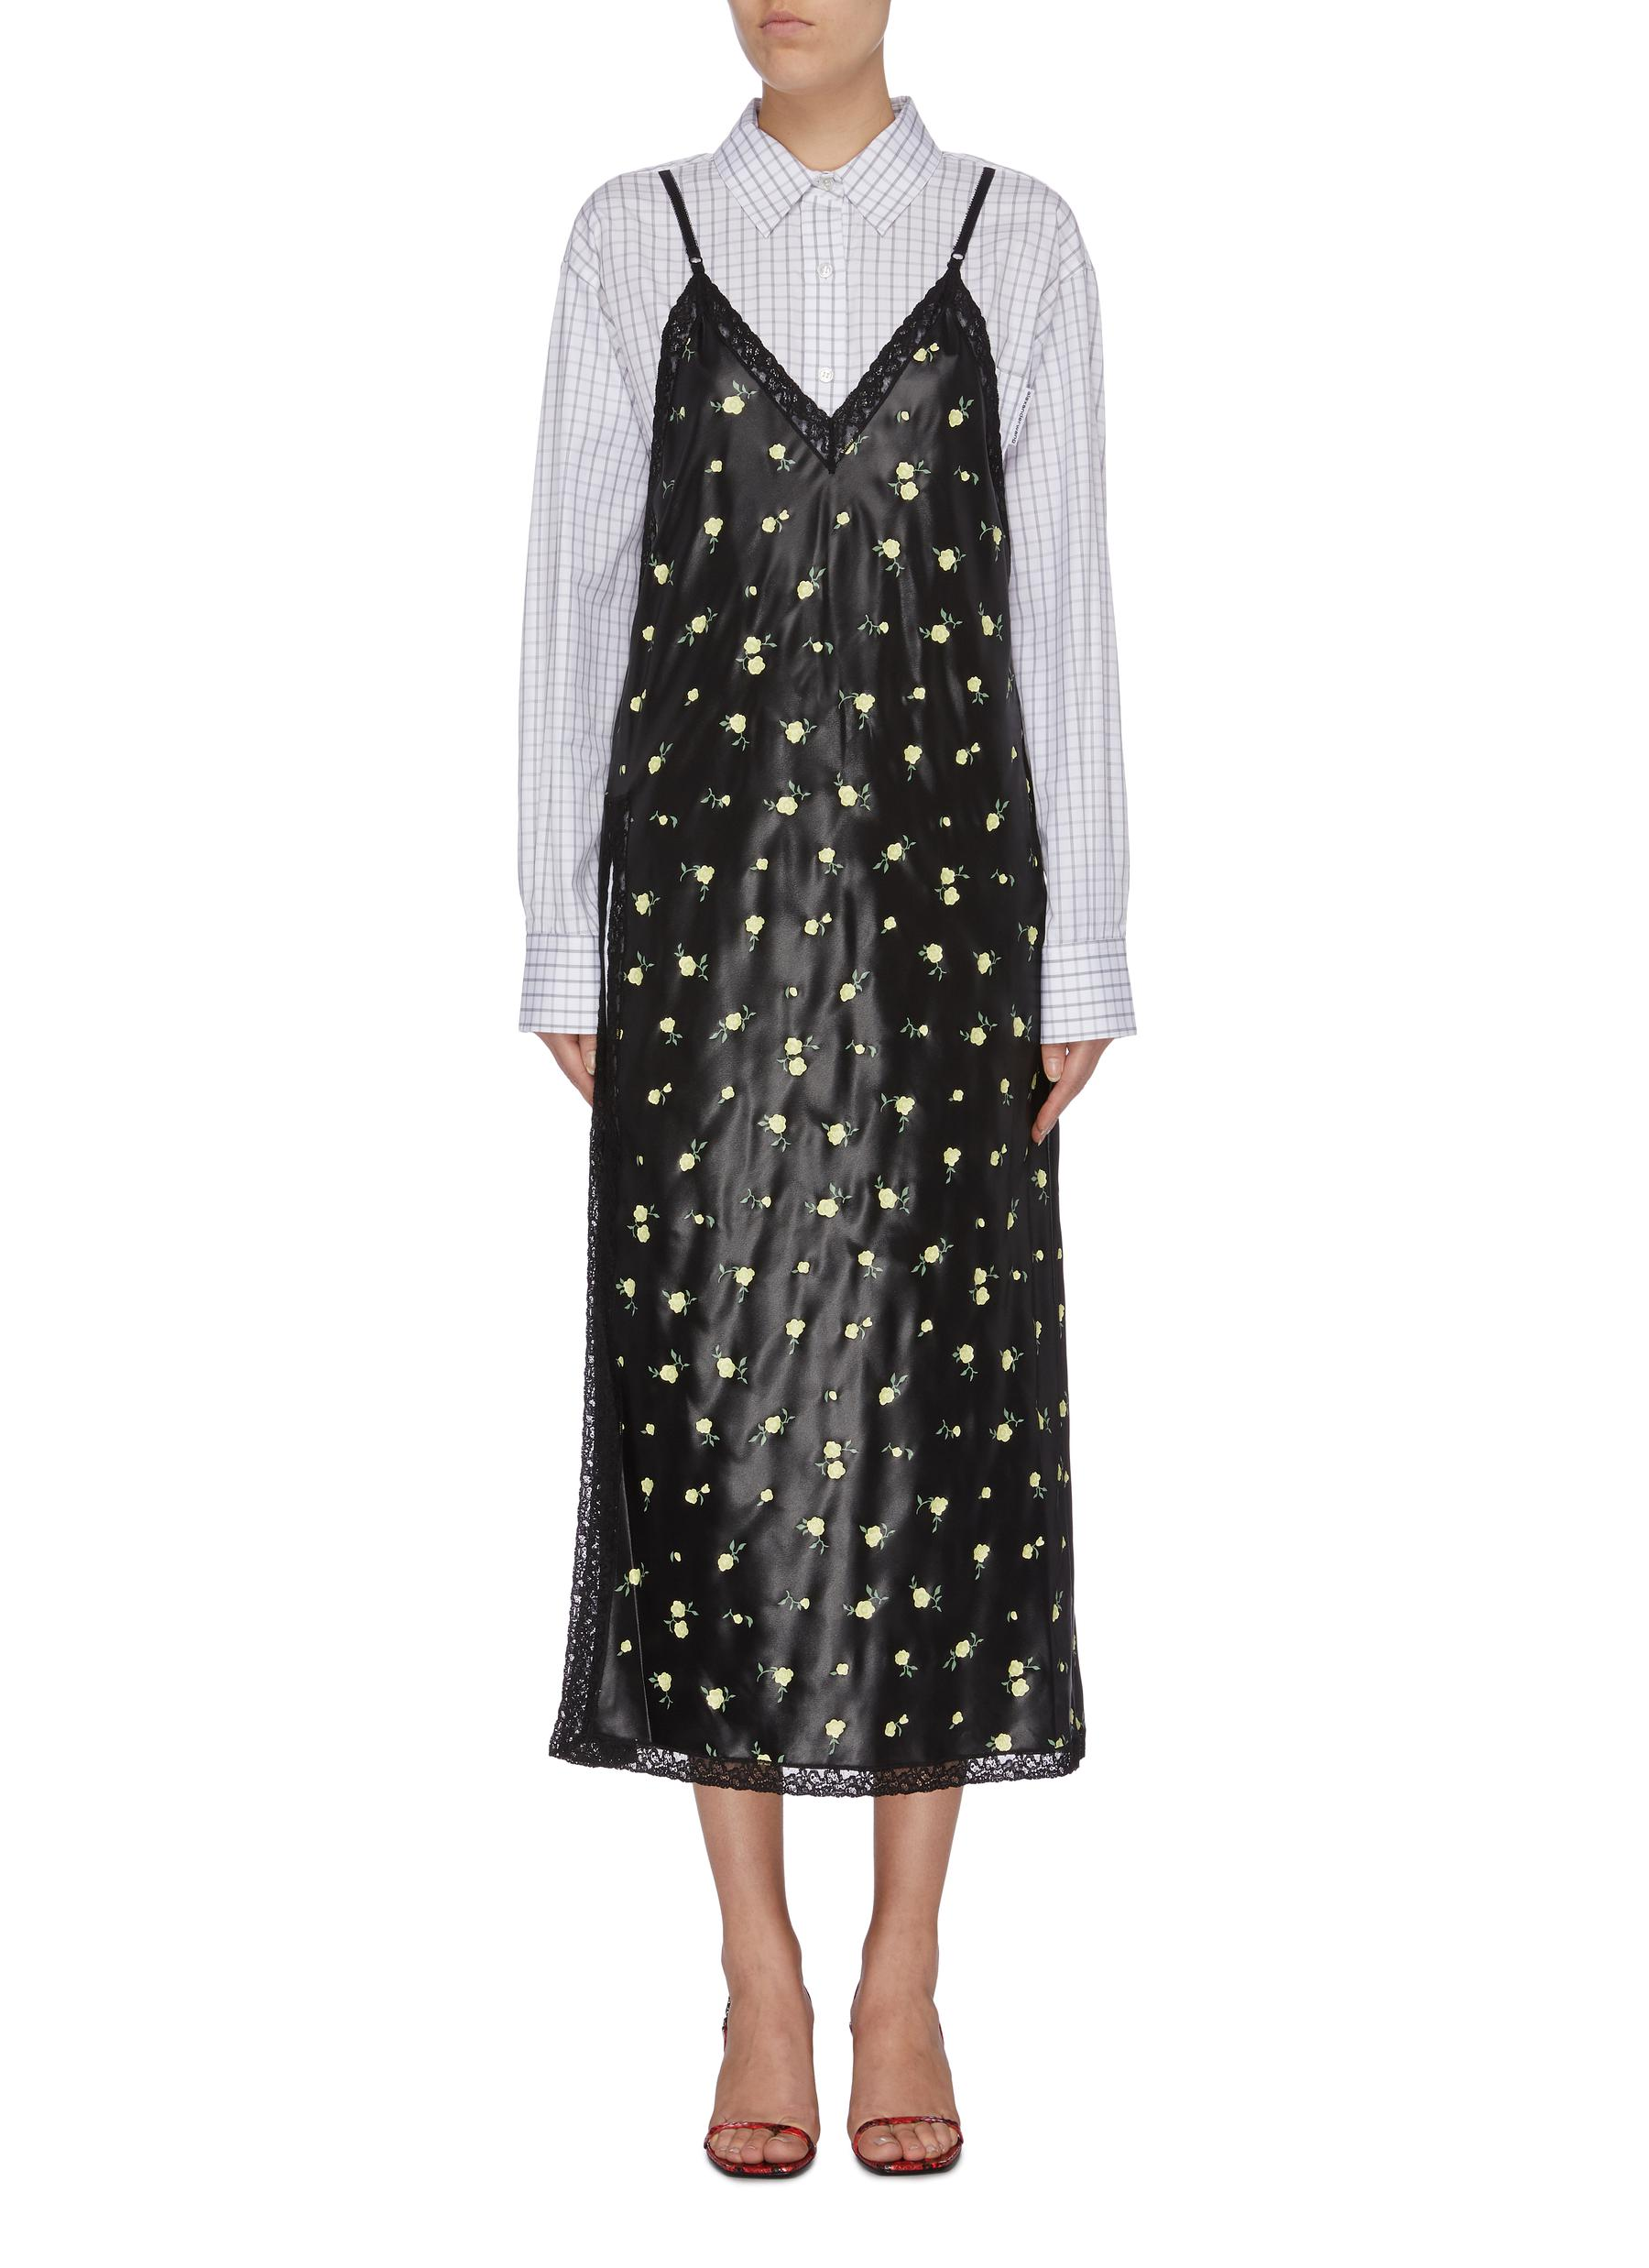 Checkered shirt underlay floral print slip dress by Alexanderwang